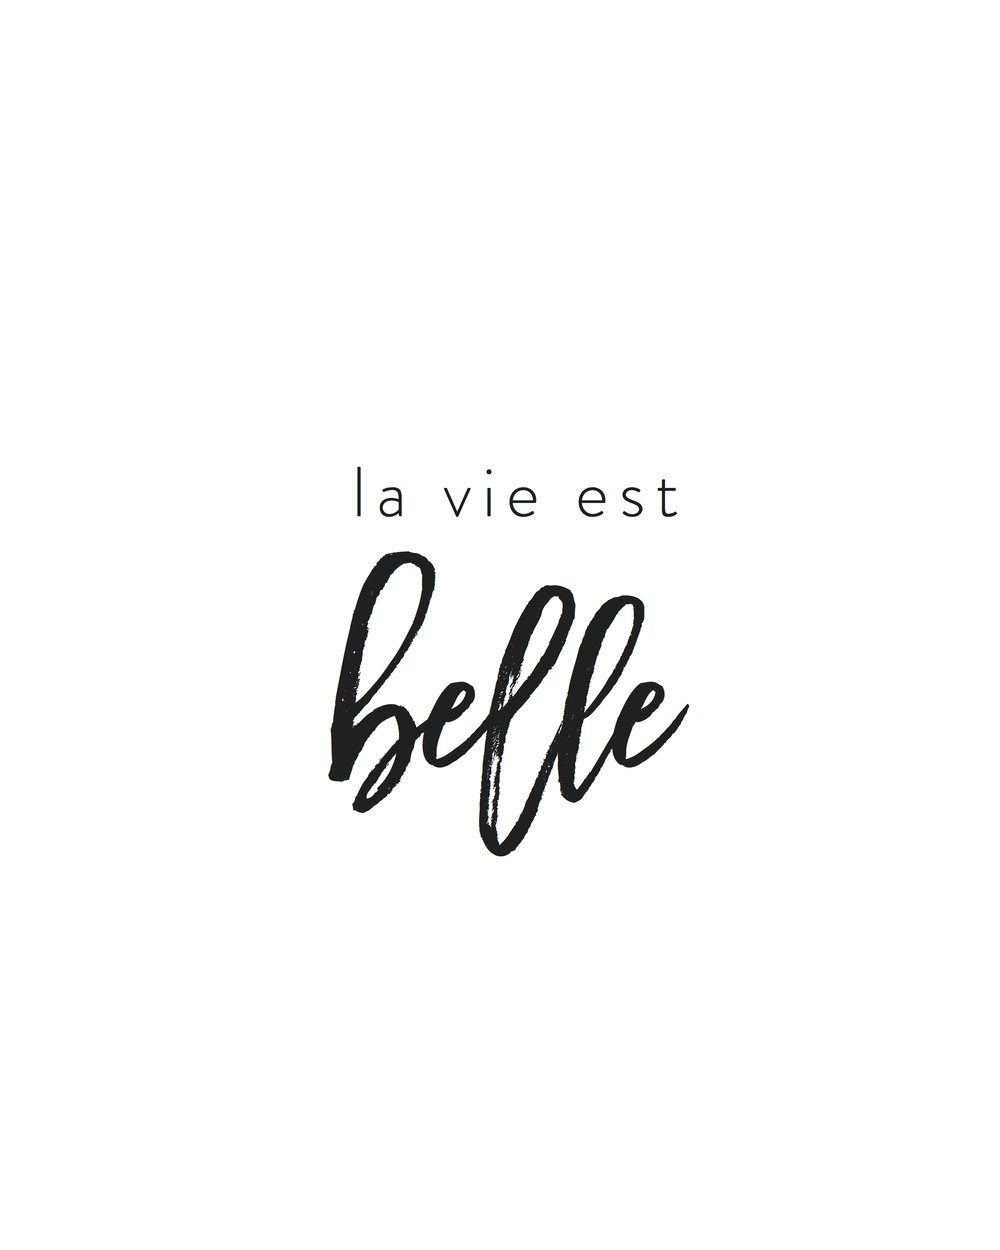 la vie est belle life is beautiful